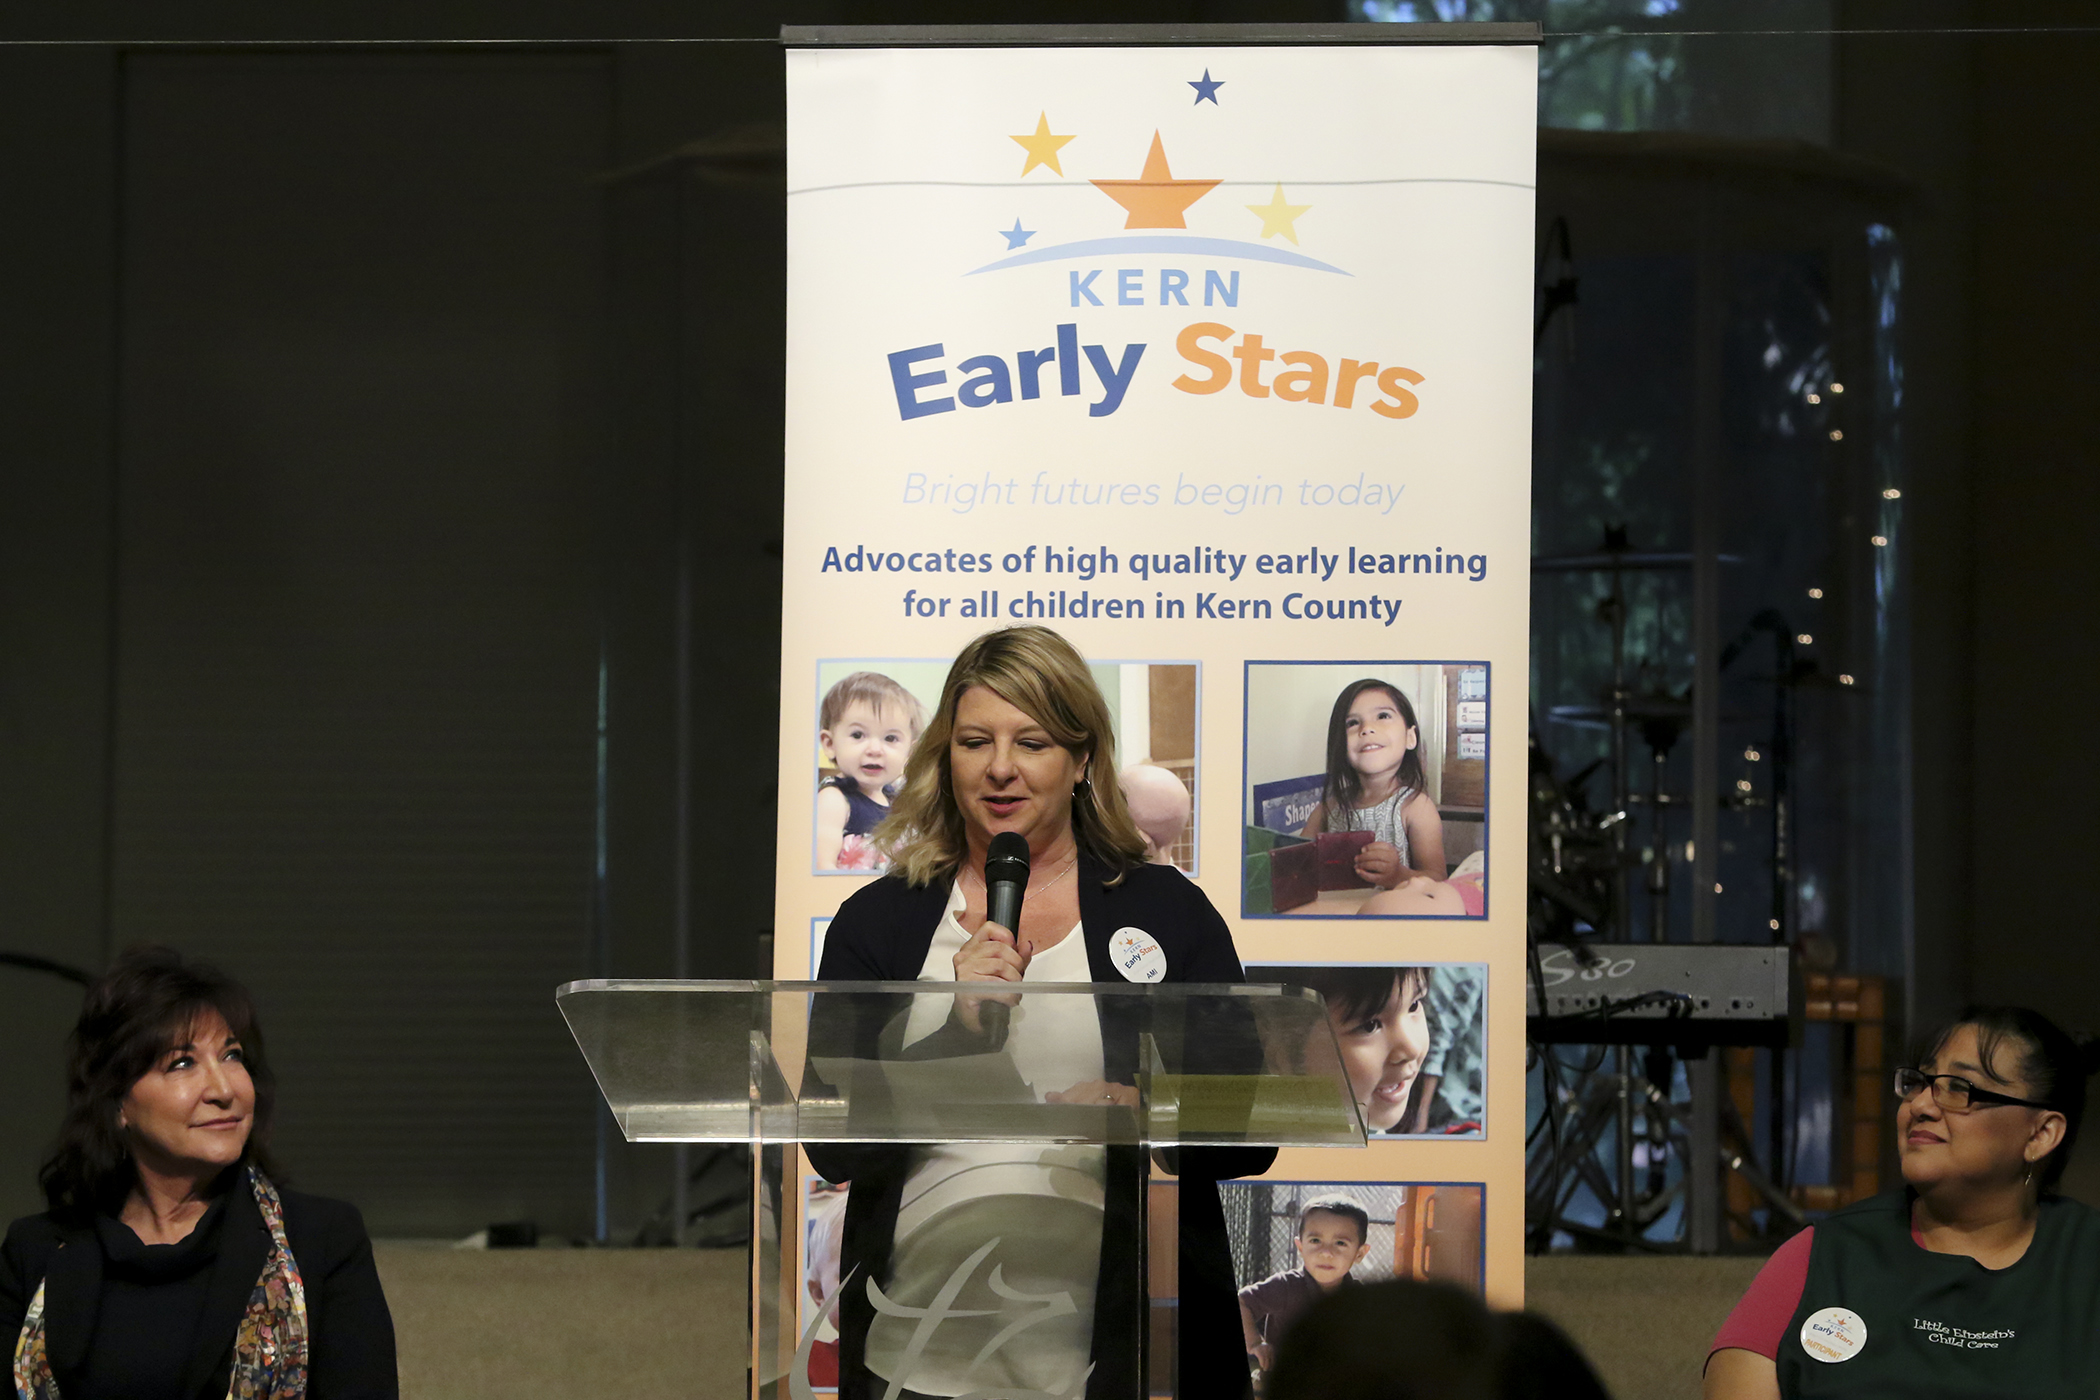 Kern Early Stars Program Launched